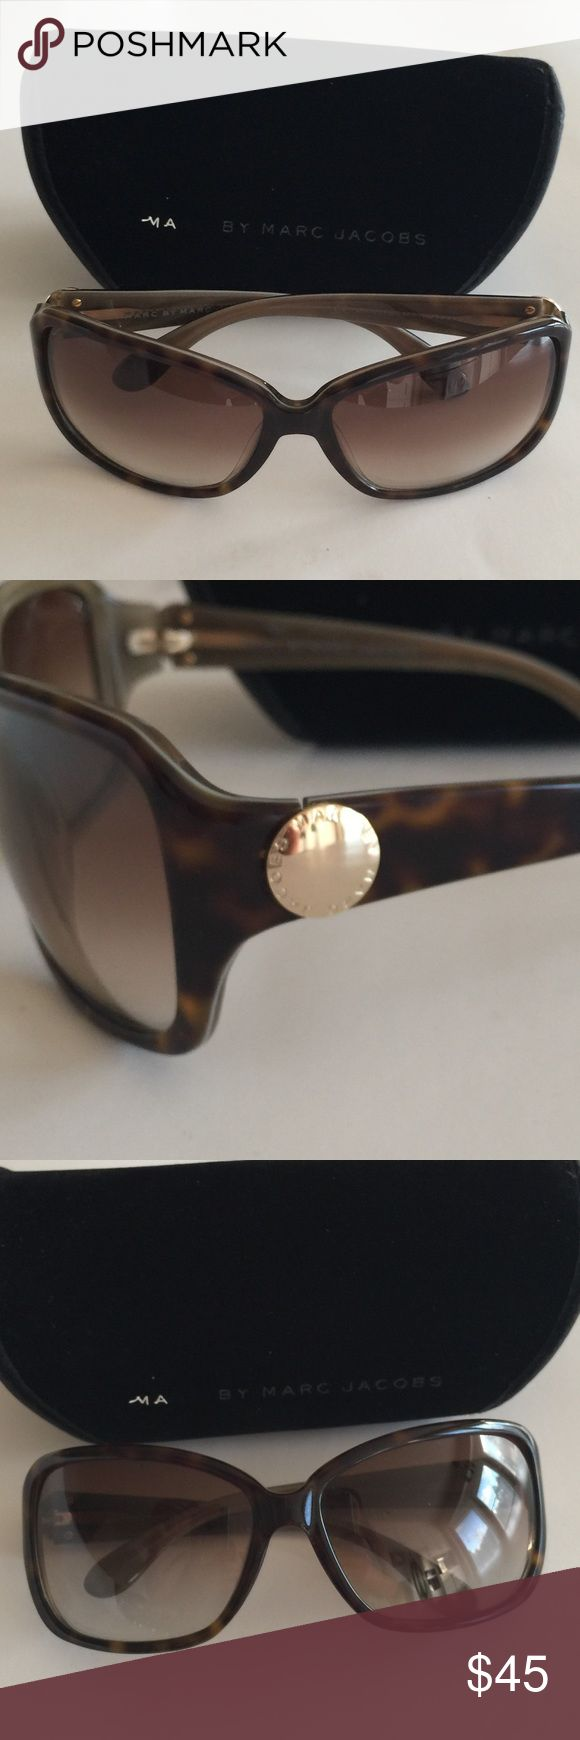 Marc by Marc Jacobs Tortoise Sunglasses Marc by Marc Jacobs Tortoise Sunglasses MMJ021/S.  No scratches on lenses - Great Condition, comes with Soft Case. Marc by Marc Jacobs Accessories Sunglasses